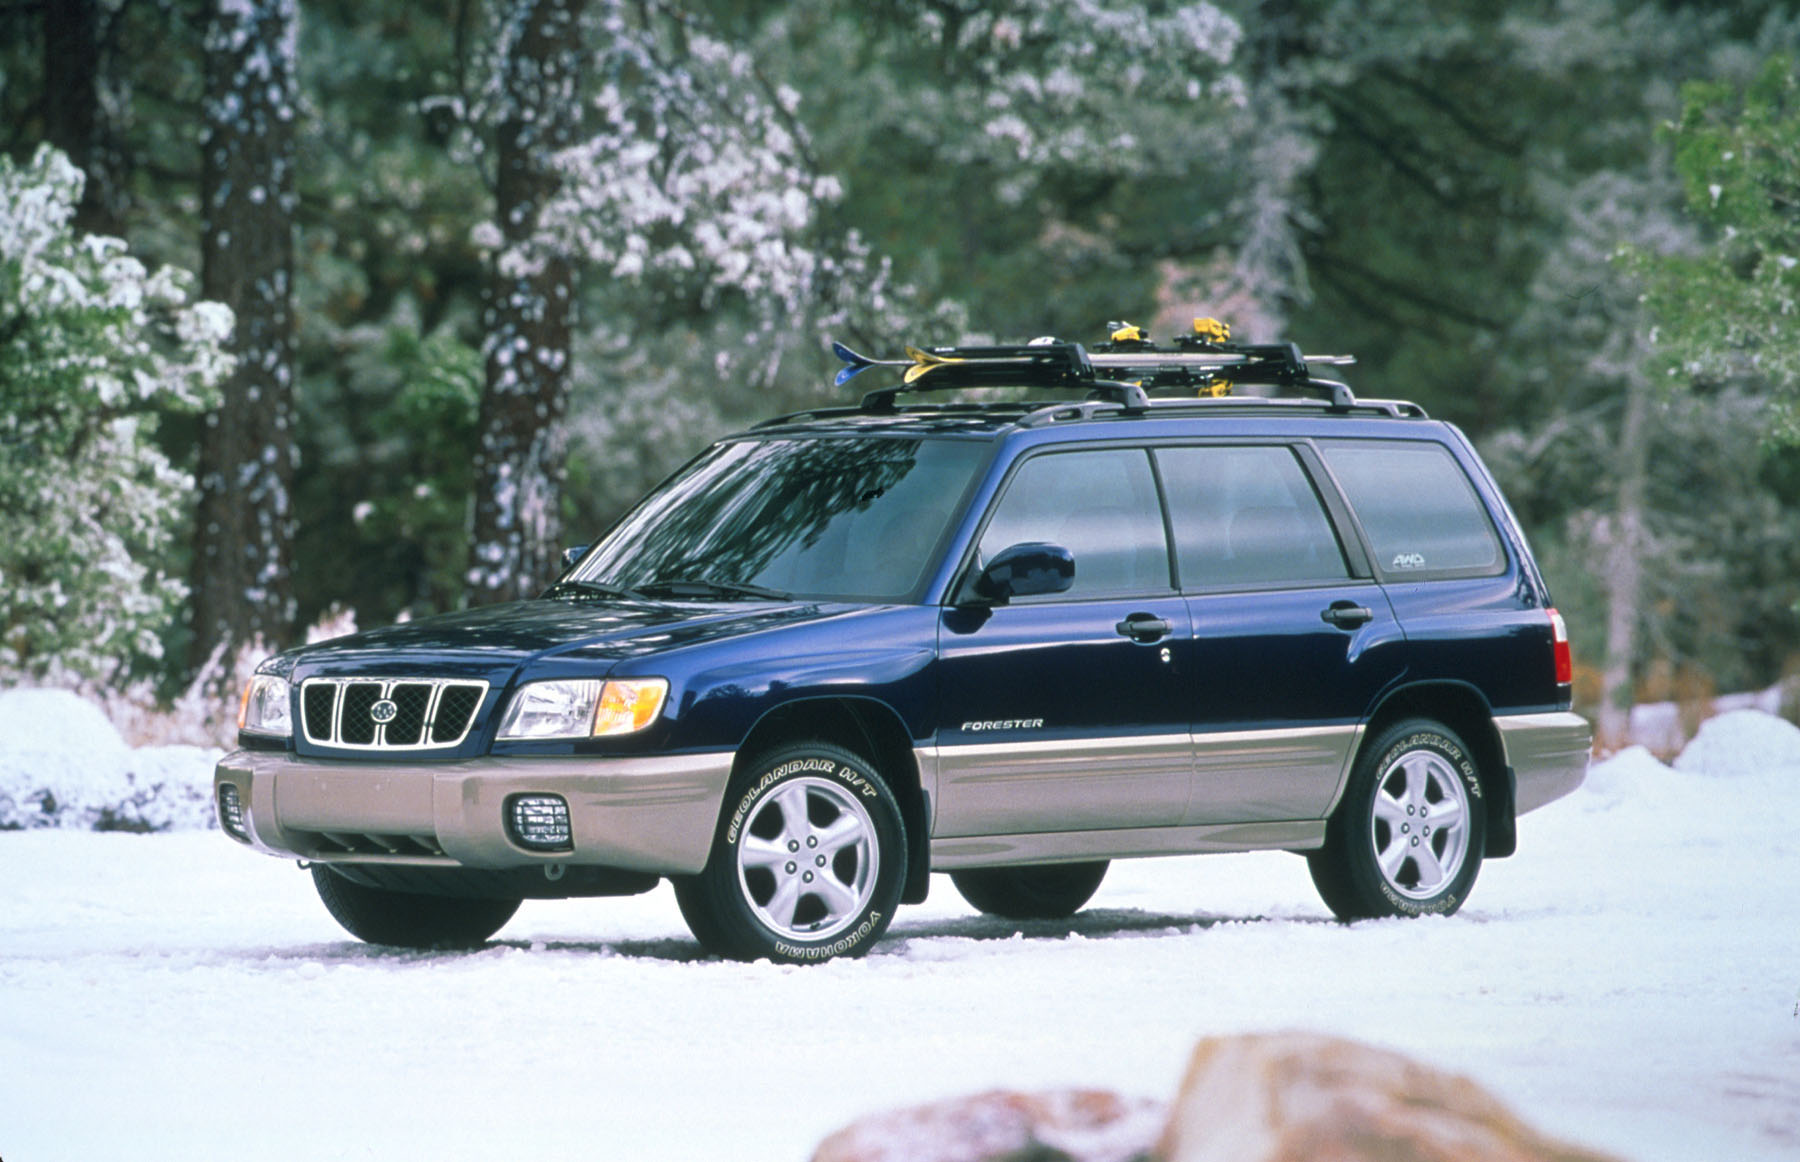 2001 subaru forester pictures history value research for Subaru forester paint job cost